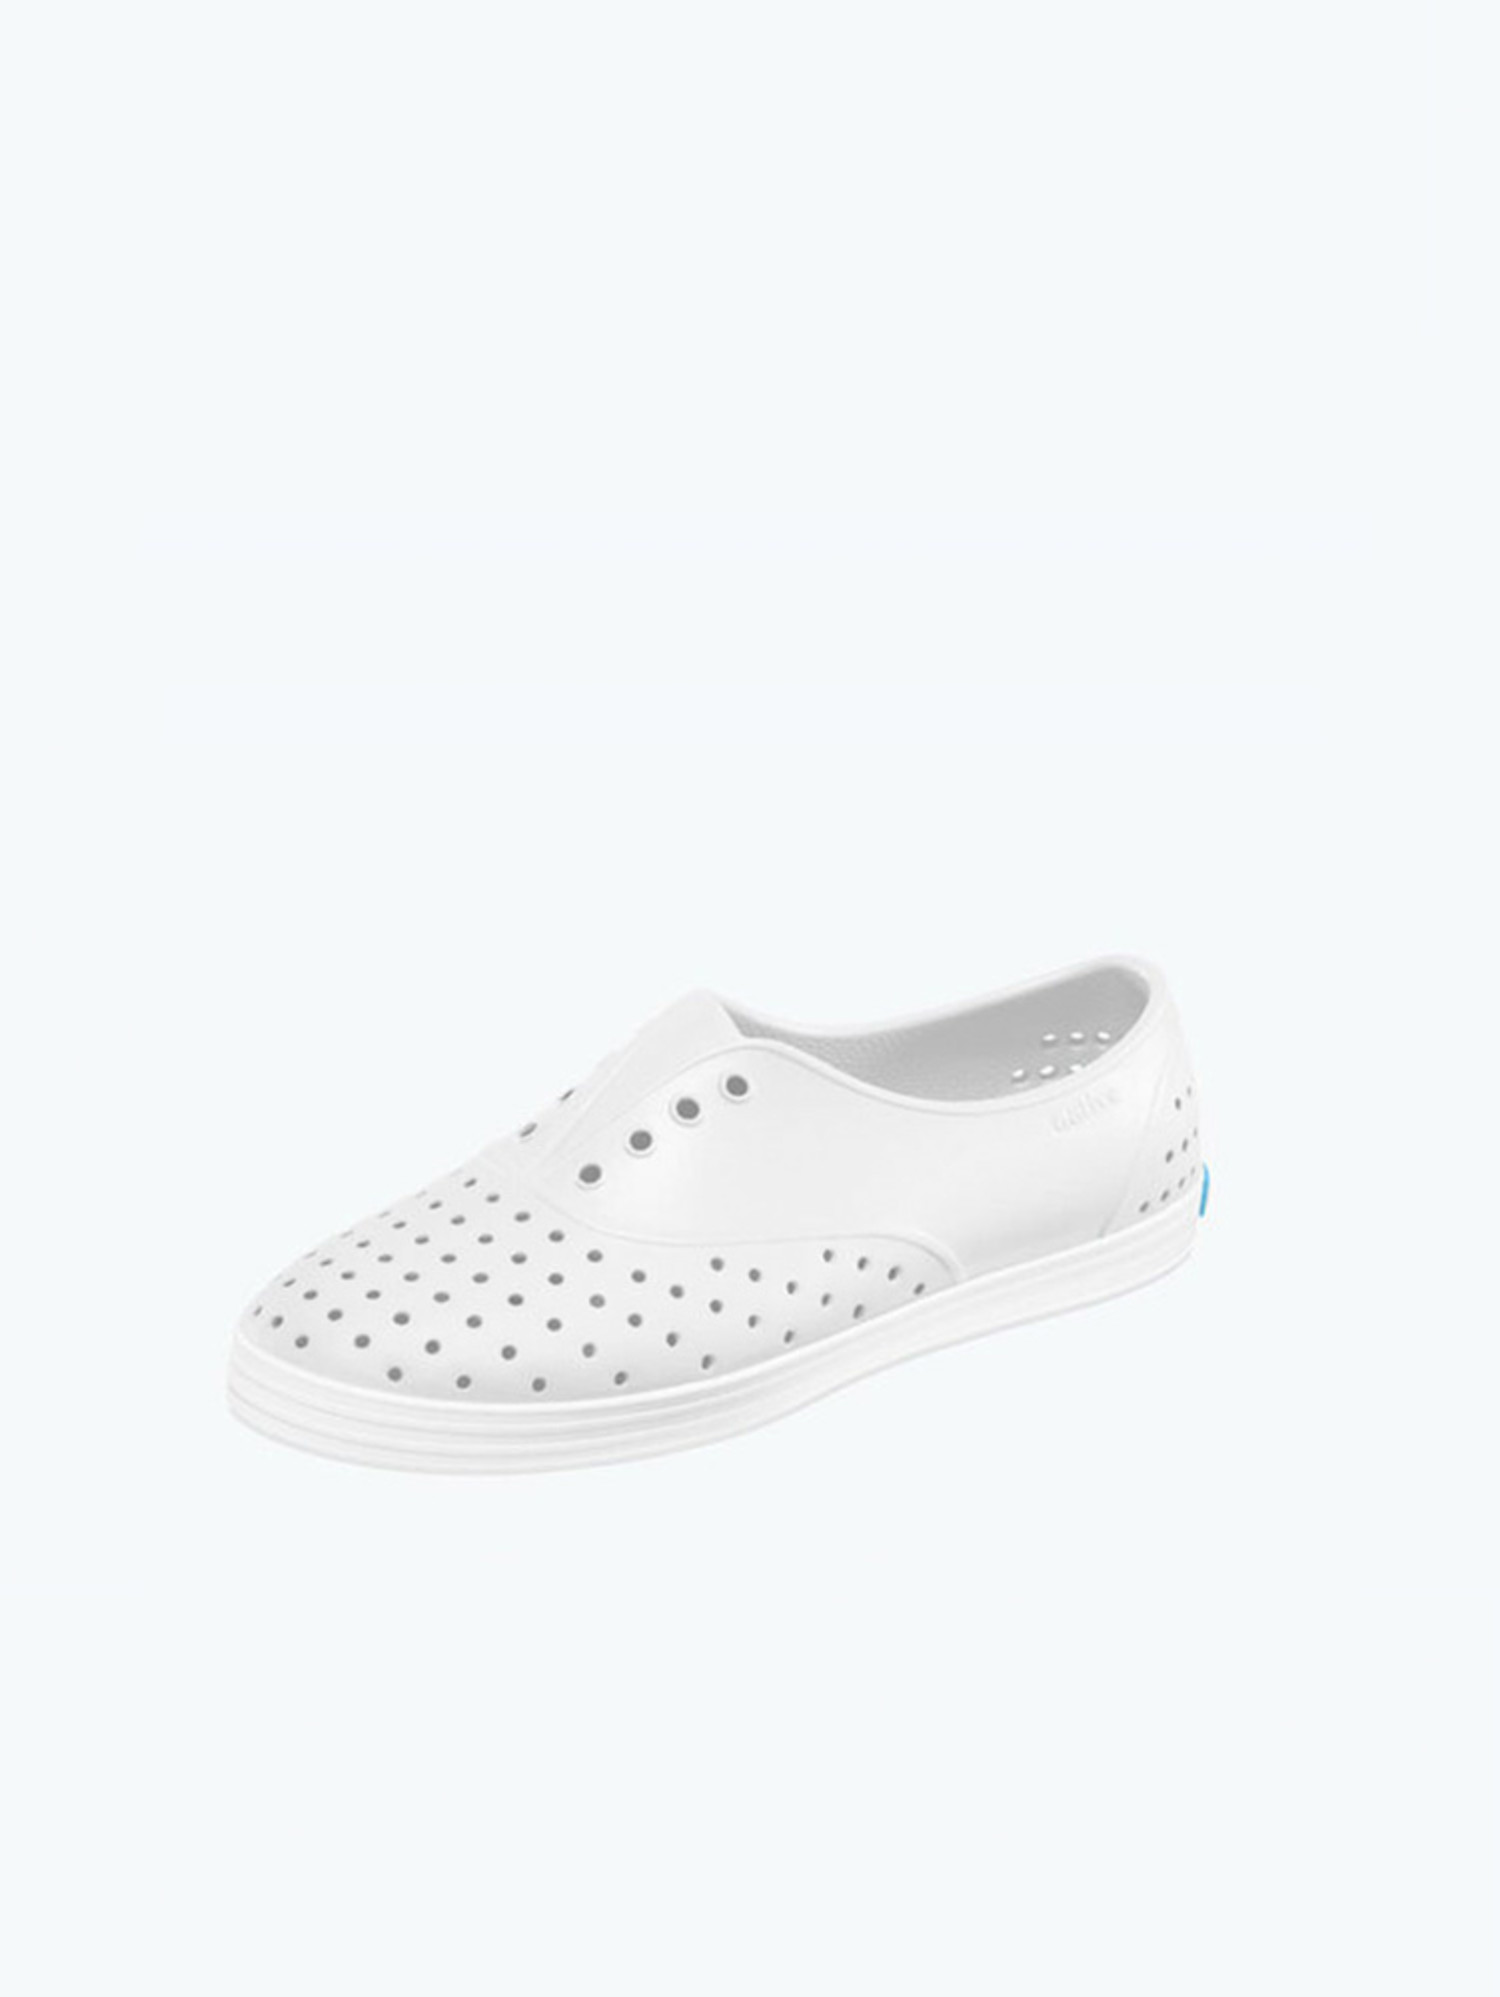 Jericho Slip-On in White by Native